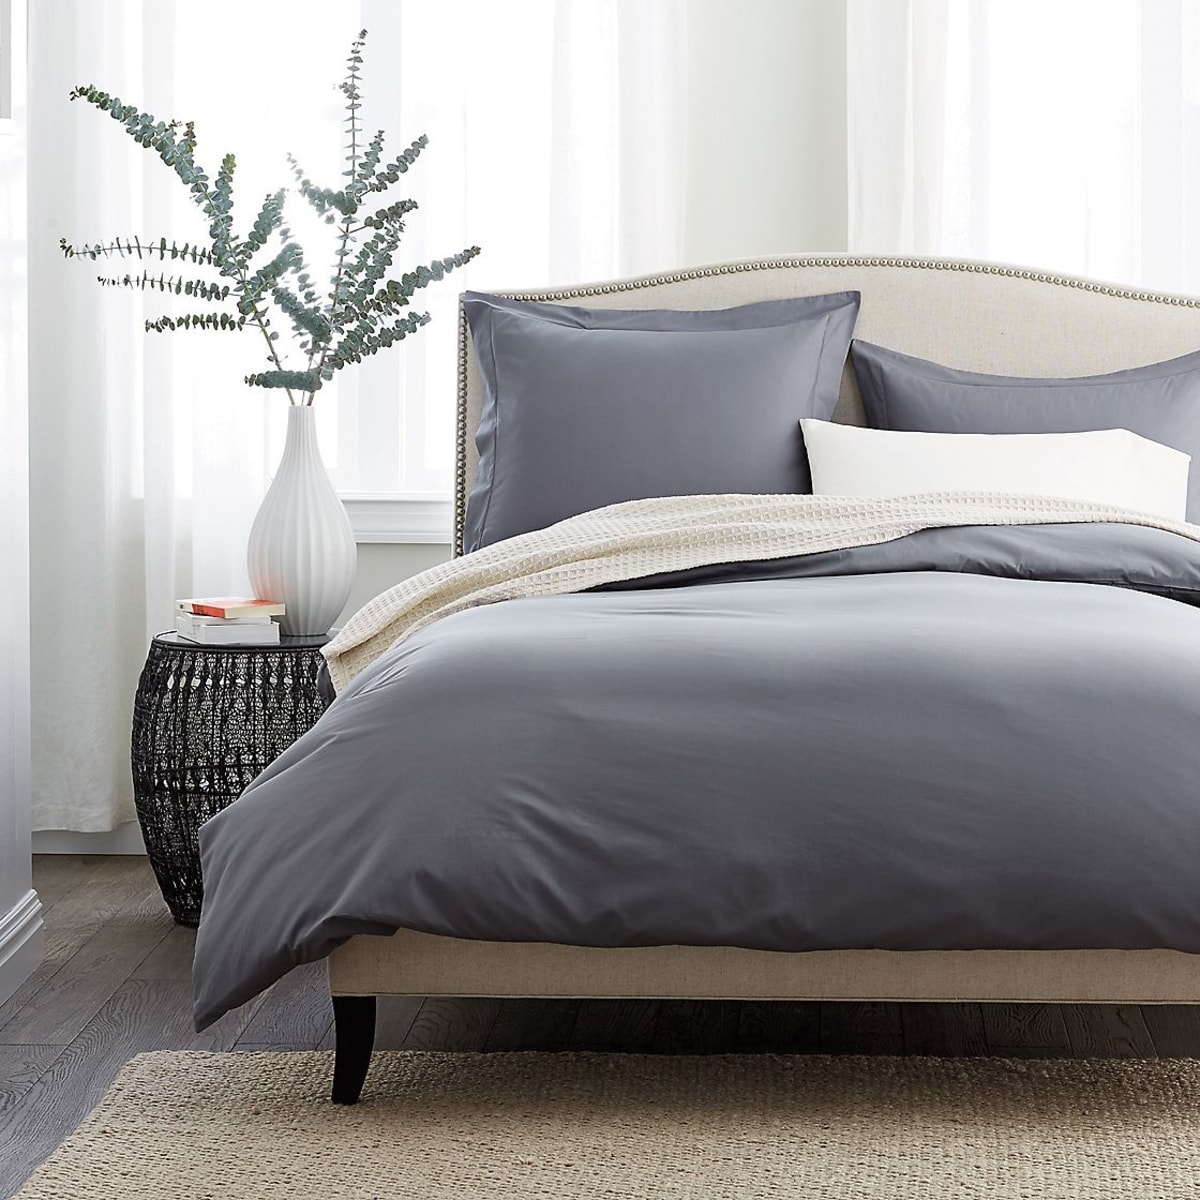 400 Thread Count Supima Percale Duvet Cover The Company Store